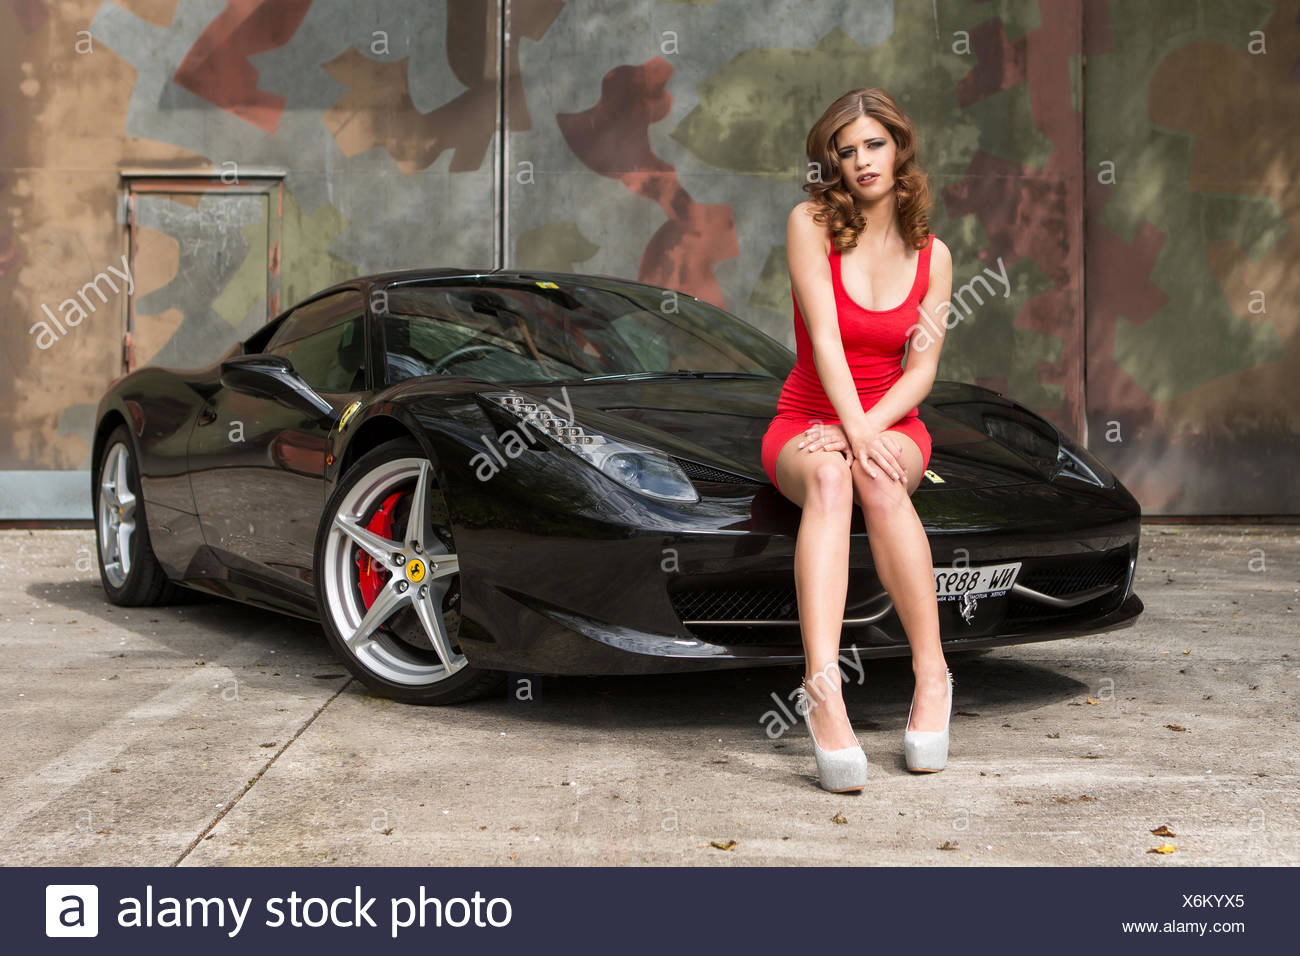 Young Woman Wearing A Red Dress Posing On A Black Ferrari 458 Italia Stock Photo Alamy